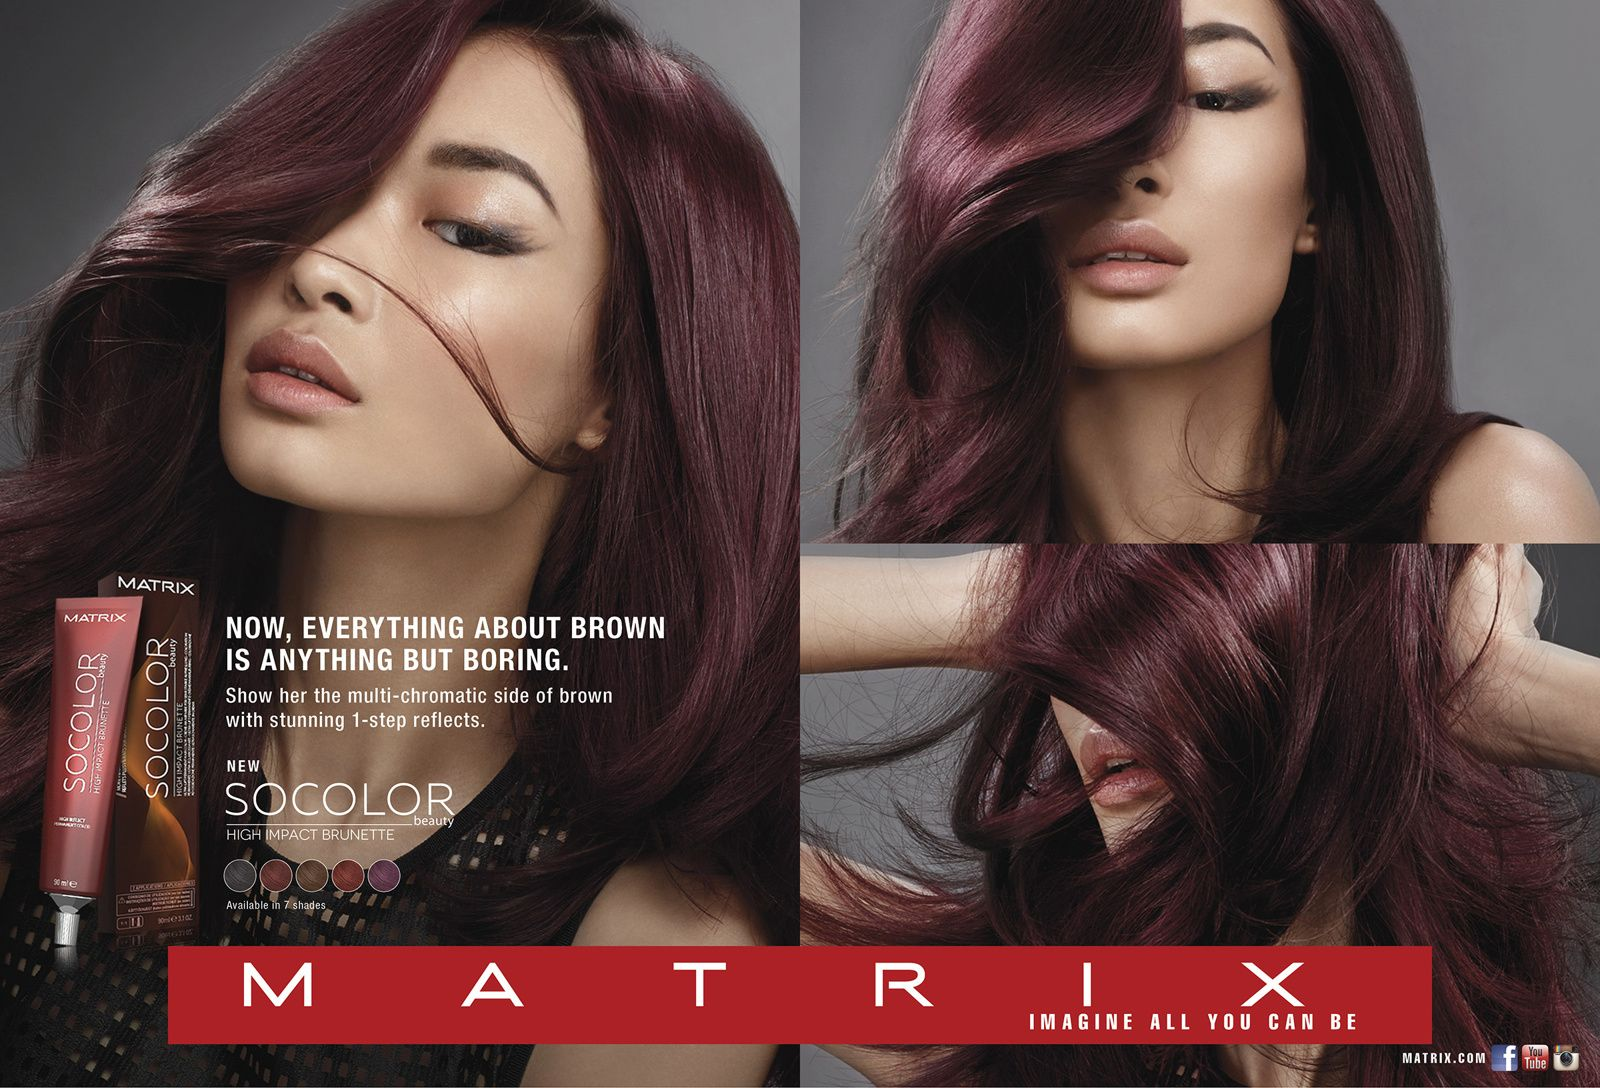 Matrix Socolor Beauty High Impact Brunette Beauty Brunette Beauty Videos